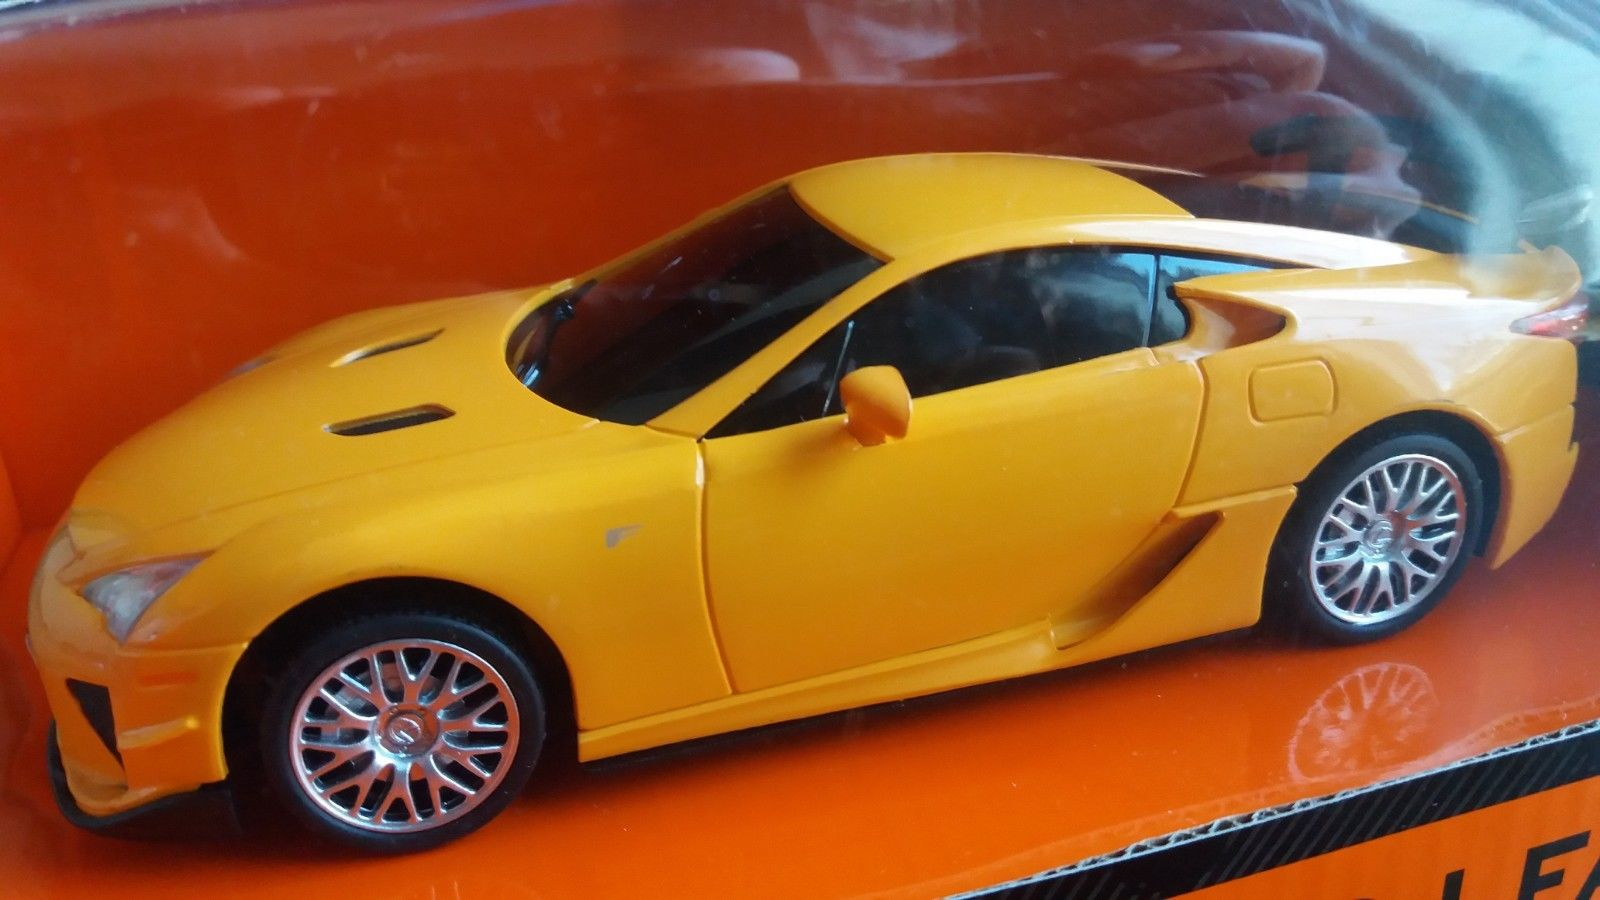 Lexus LFA Full Function Remote Control 1:24 Scale RC Yellow Braha BNIB FAST SHIP